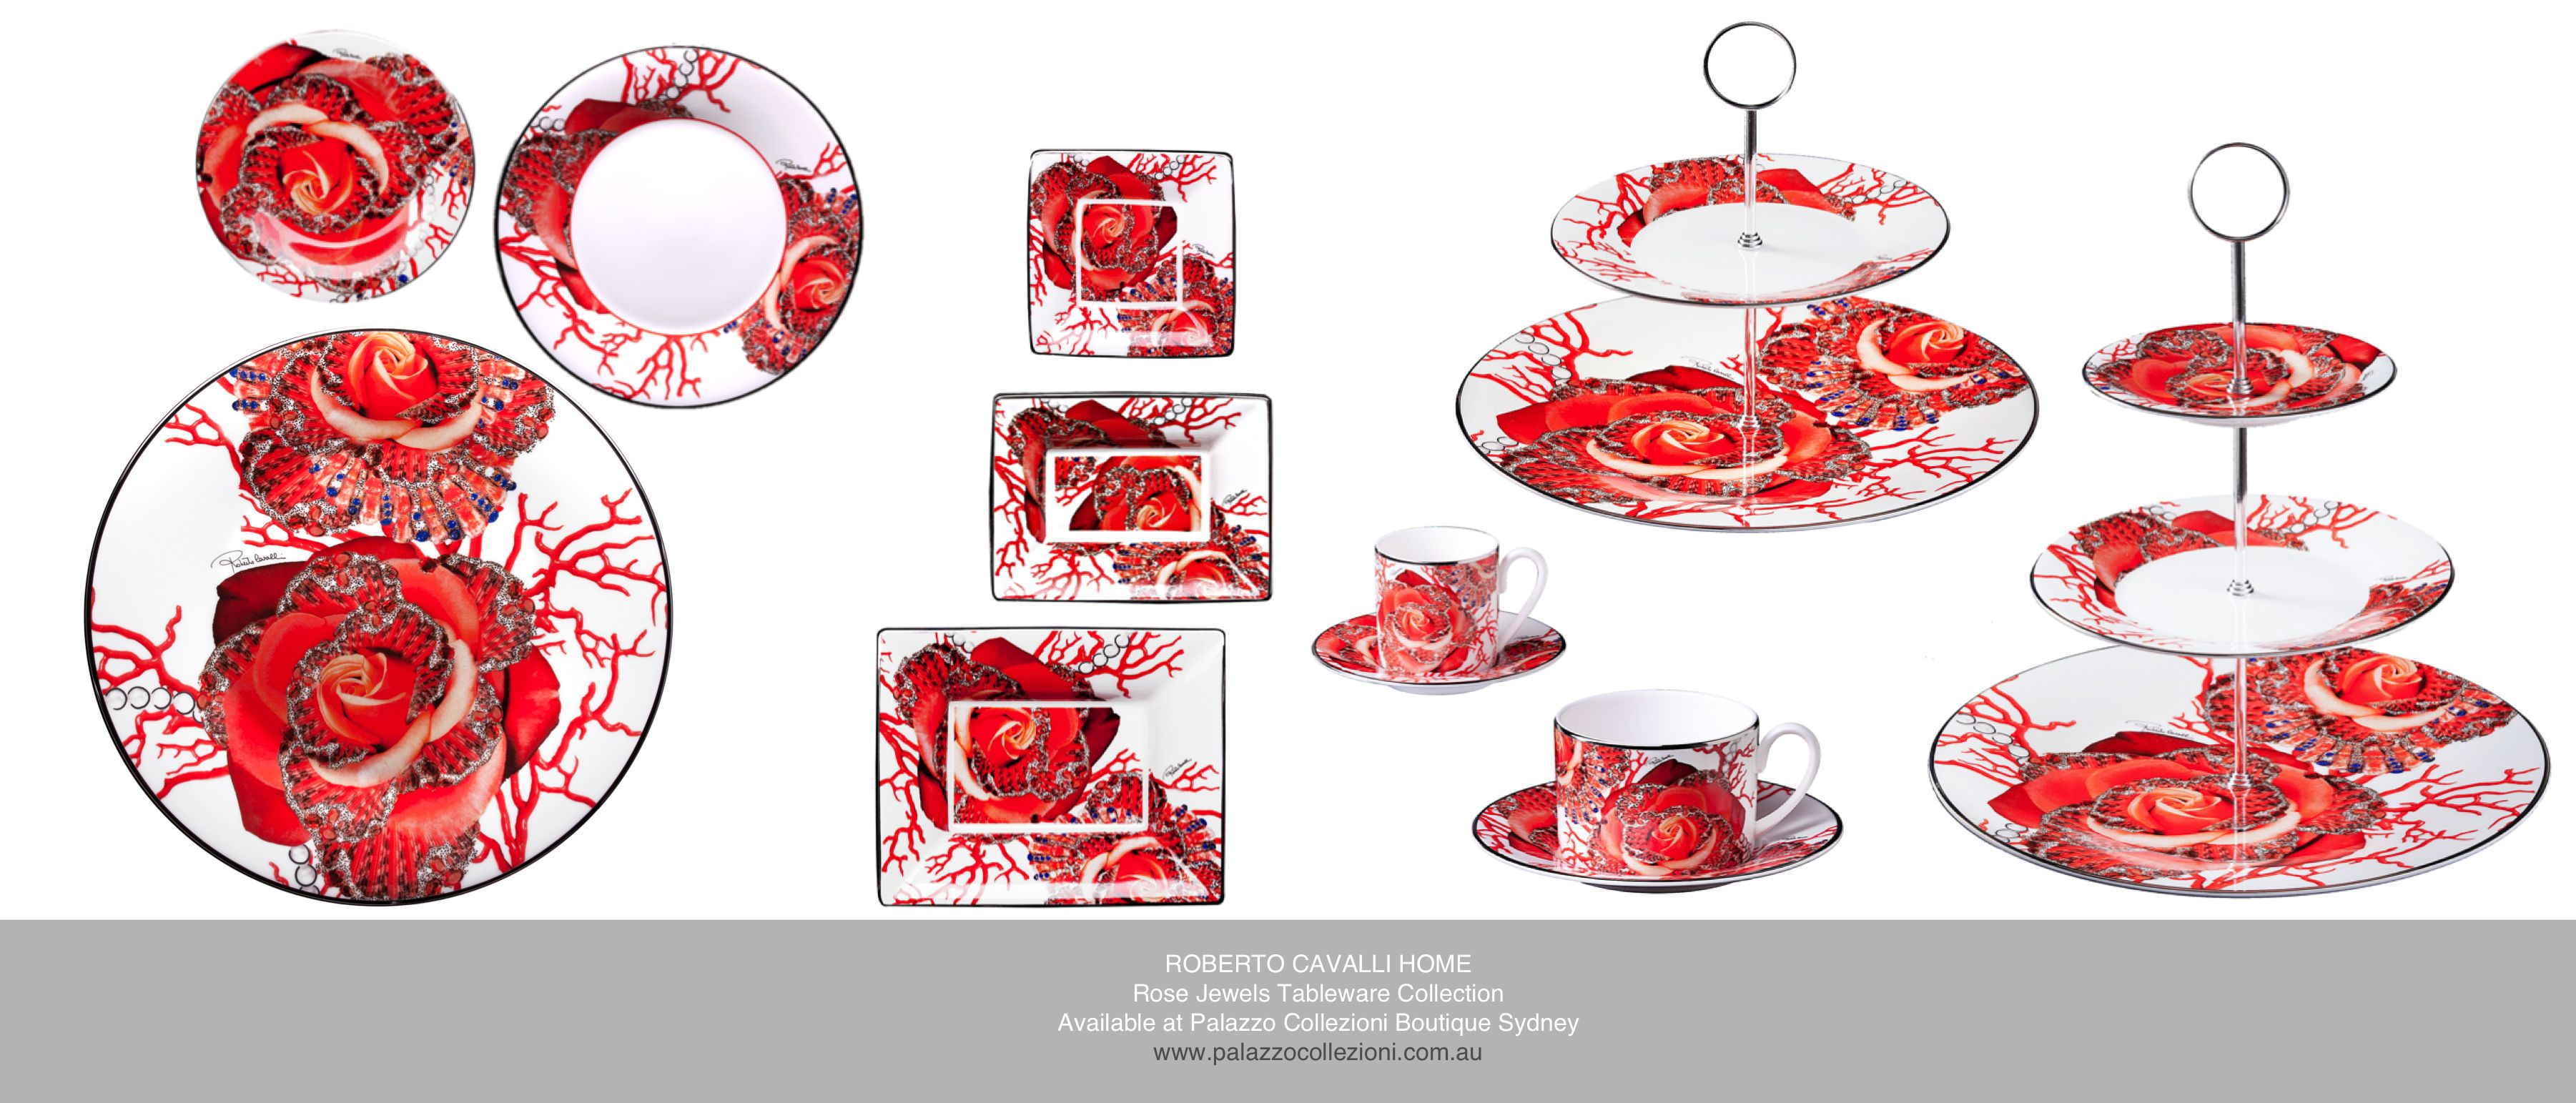 Rose Jewels Tableware Collection #robertocavalli #robertocavallihome #palazzocollezioni #tableware